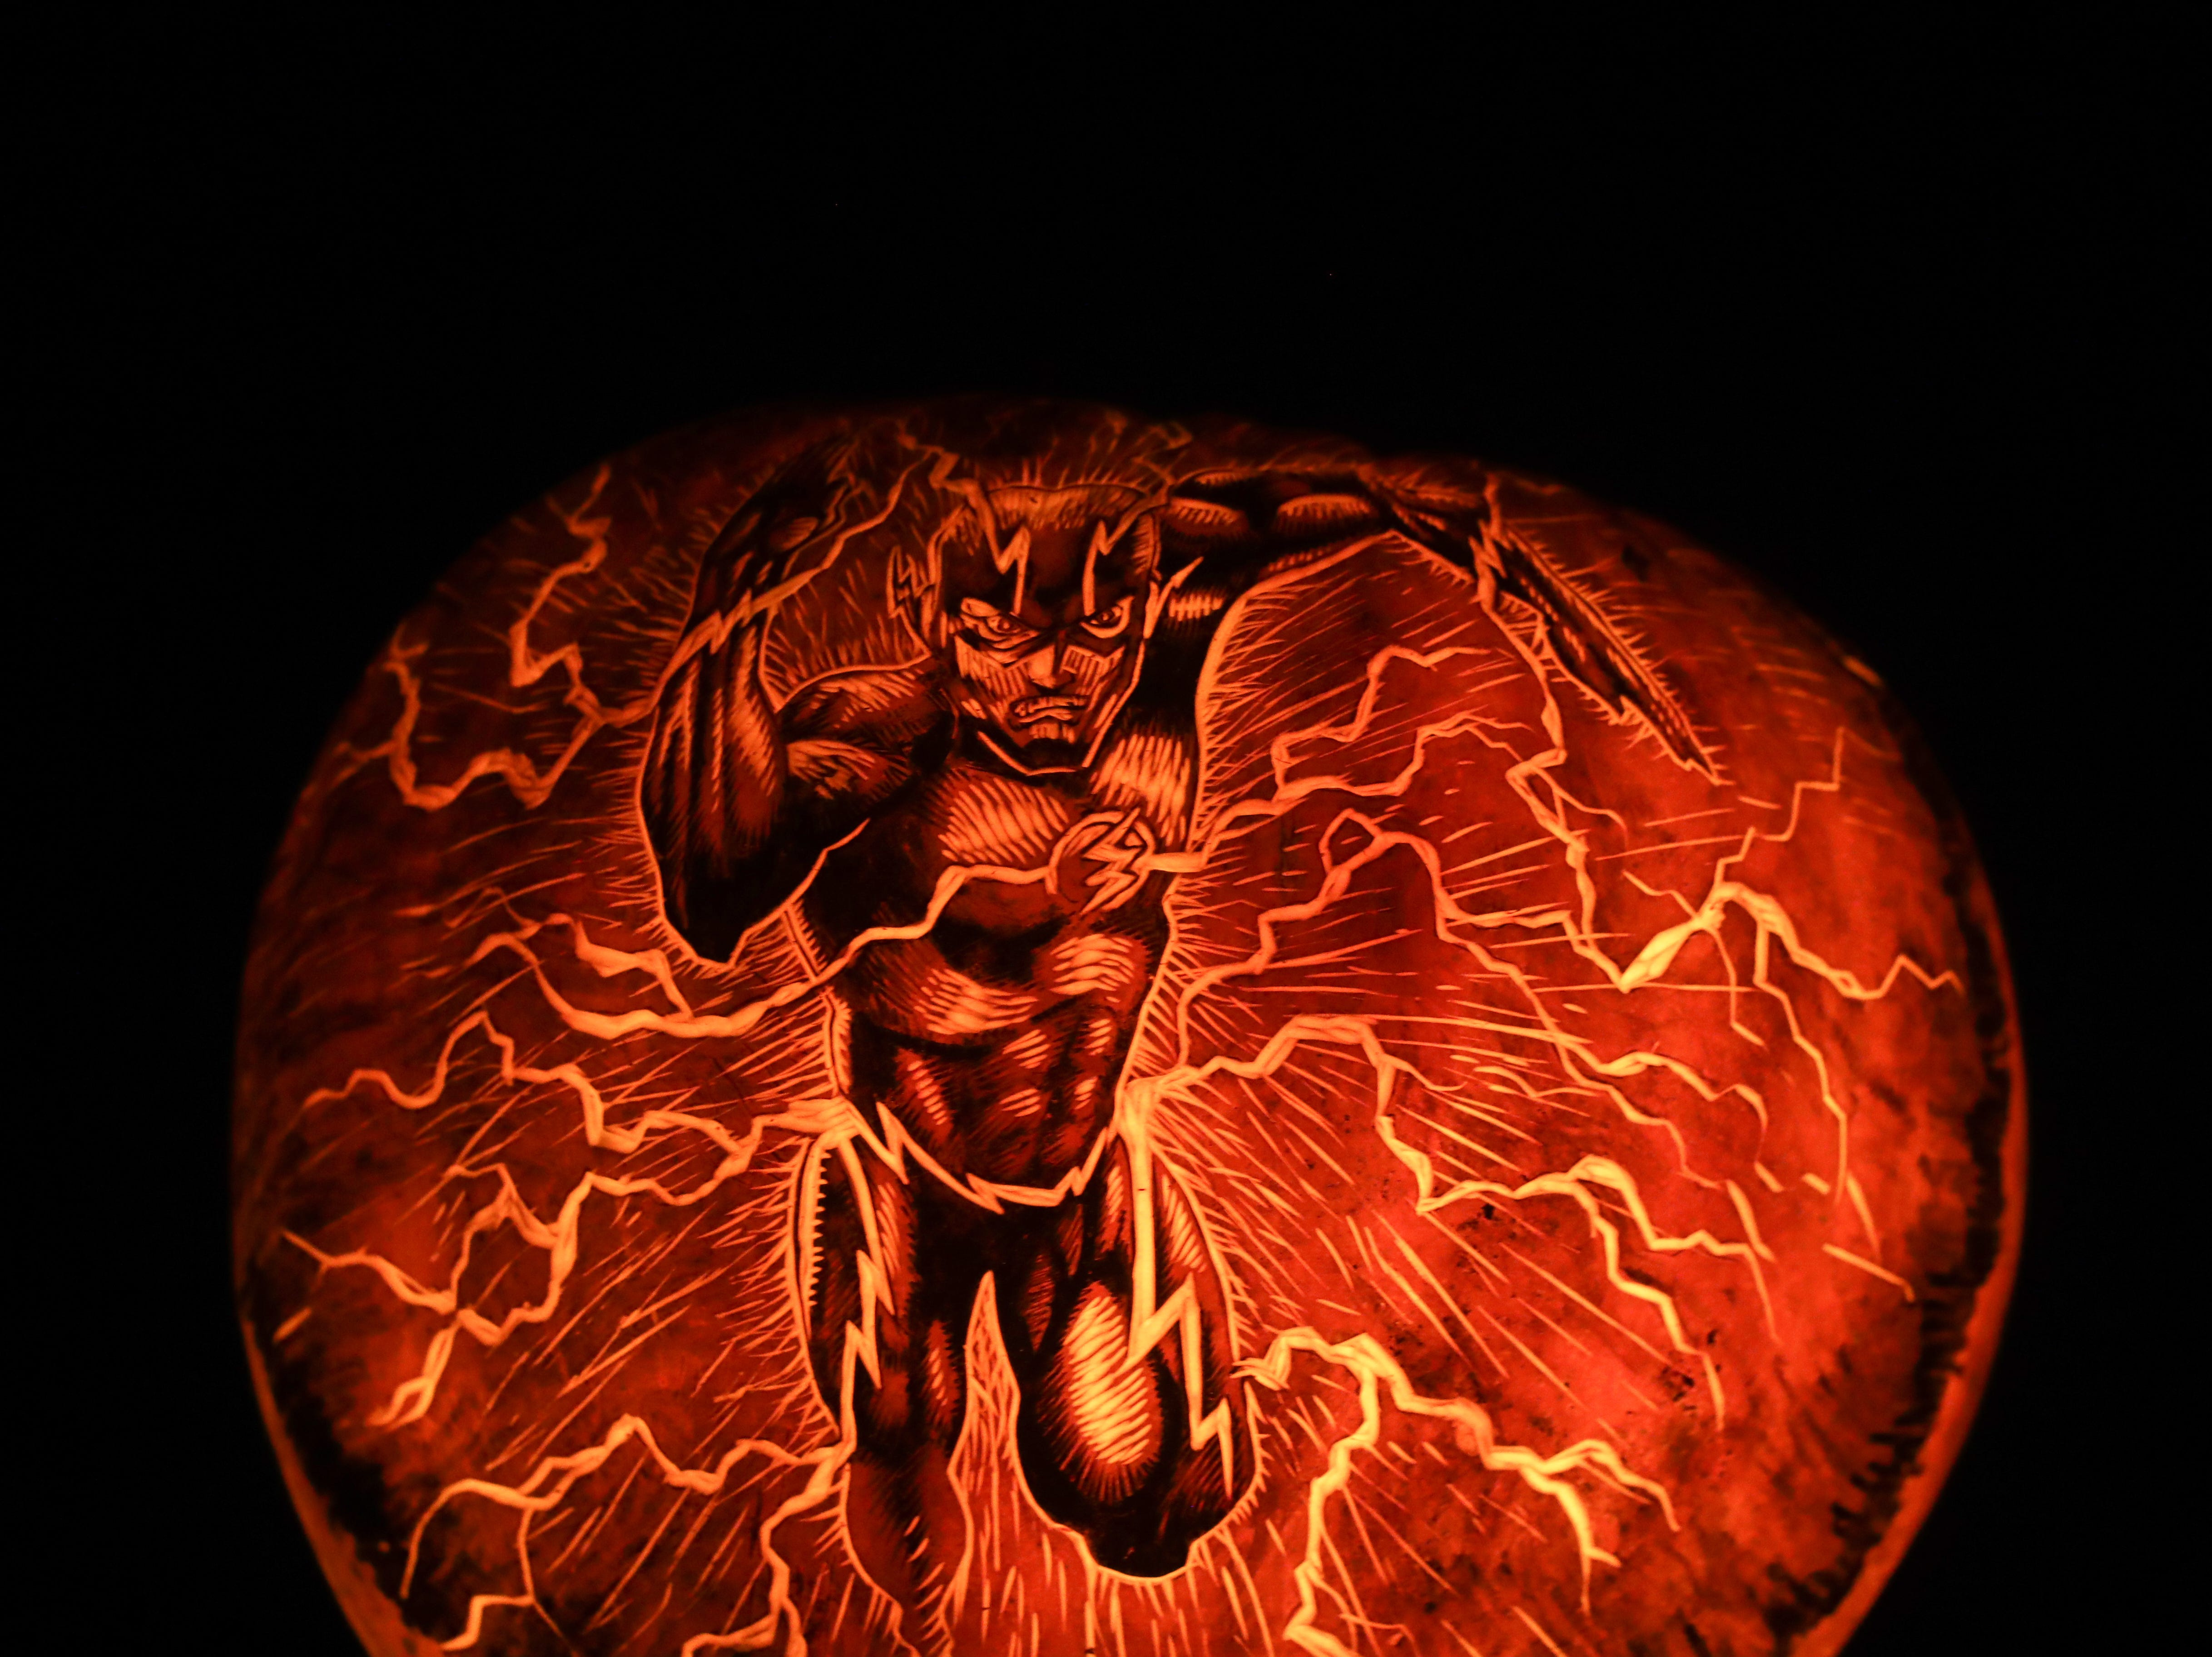 The Flash appears on a pumpkin at this year's Jack O' Lantern Spectacular. Oct. 9, 2018